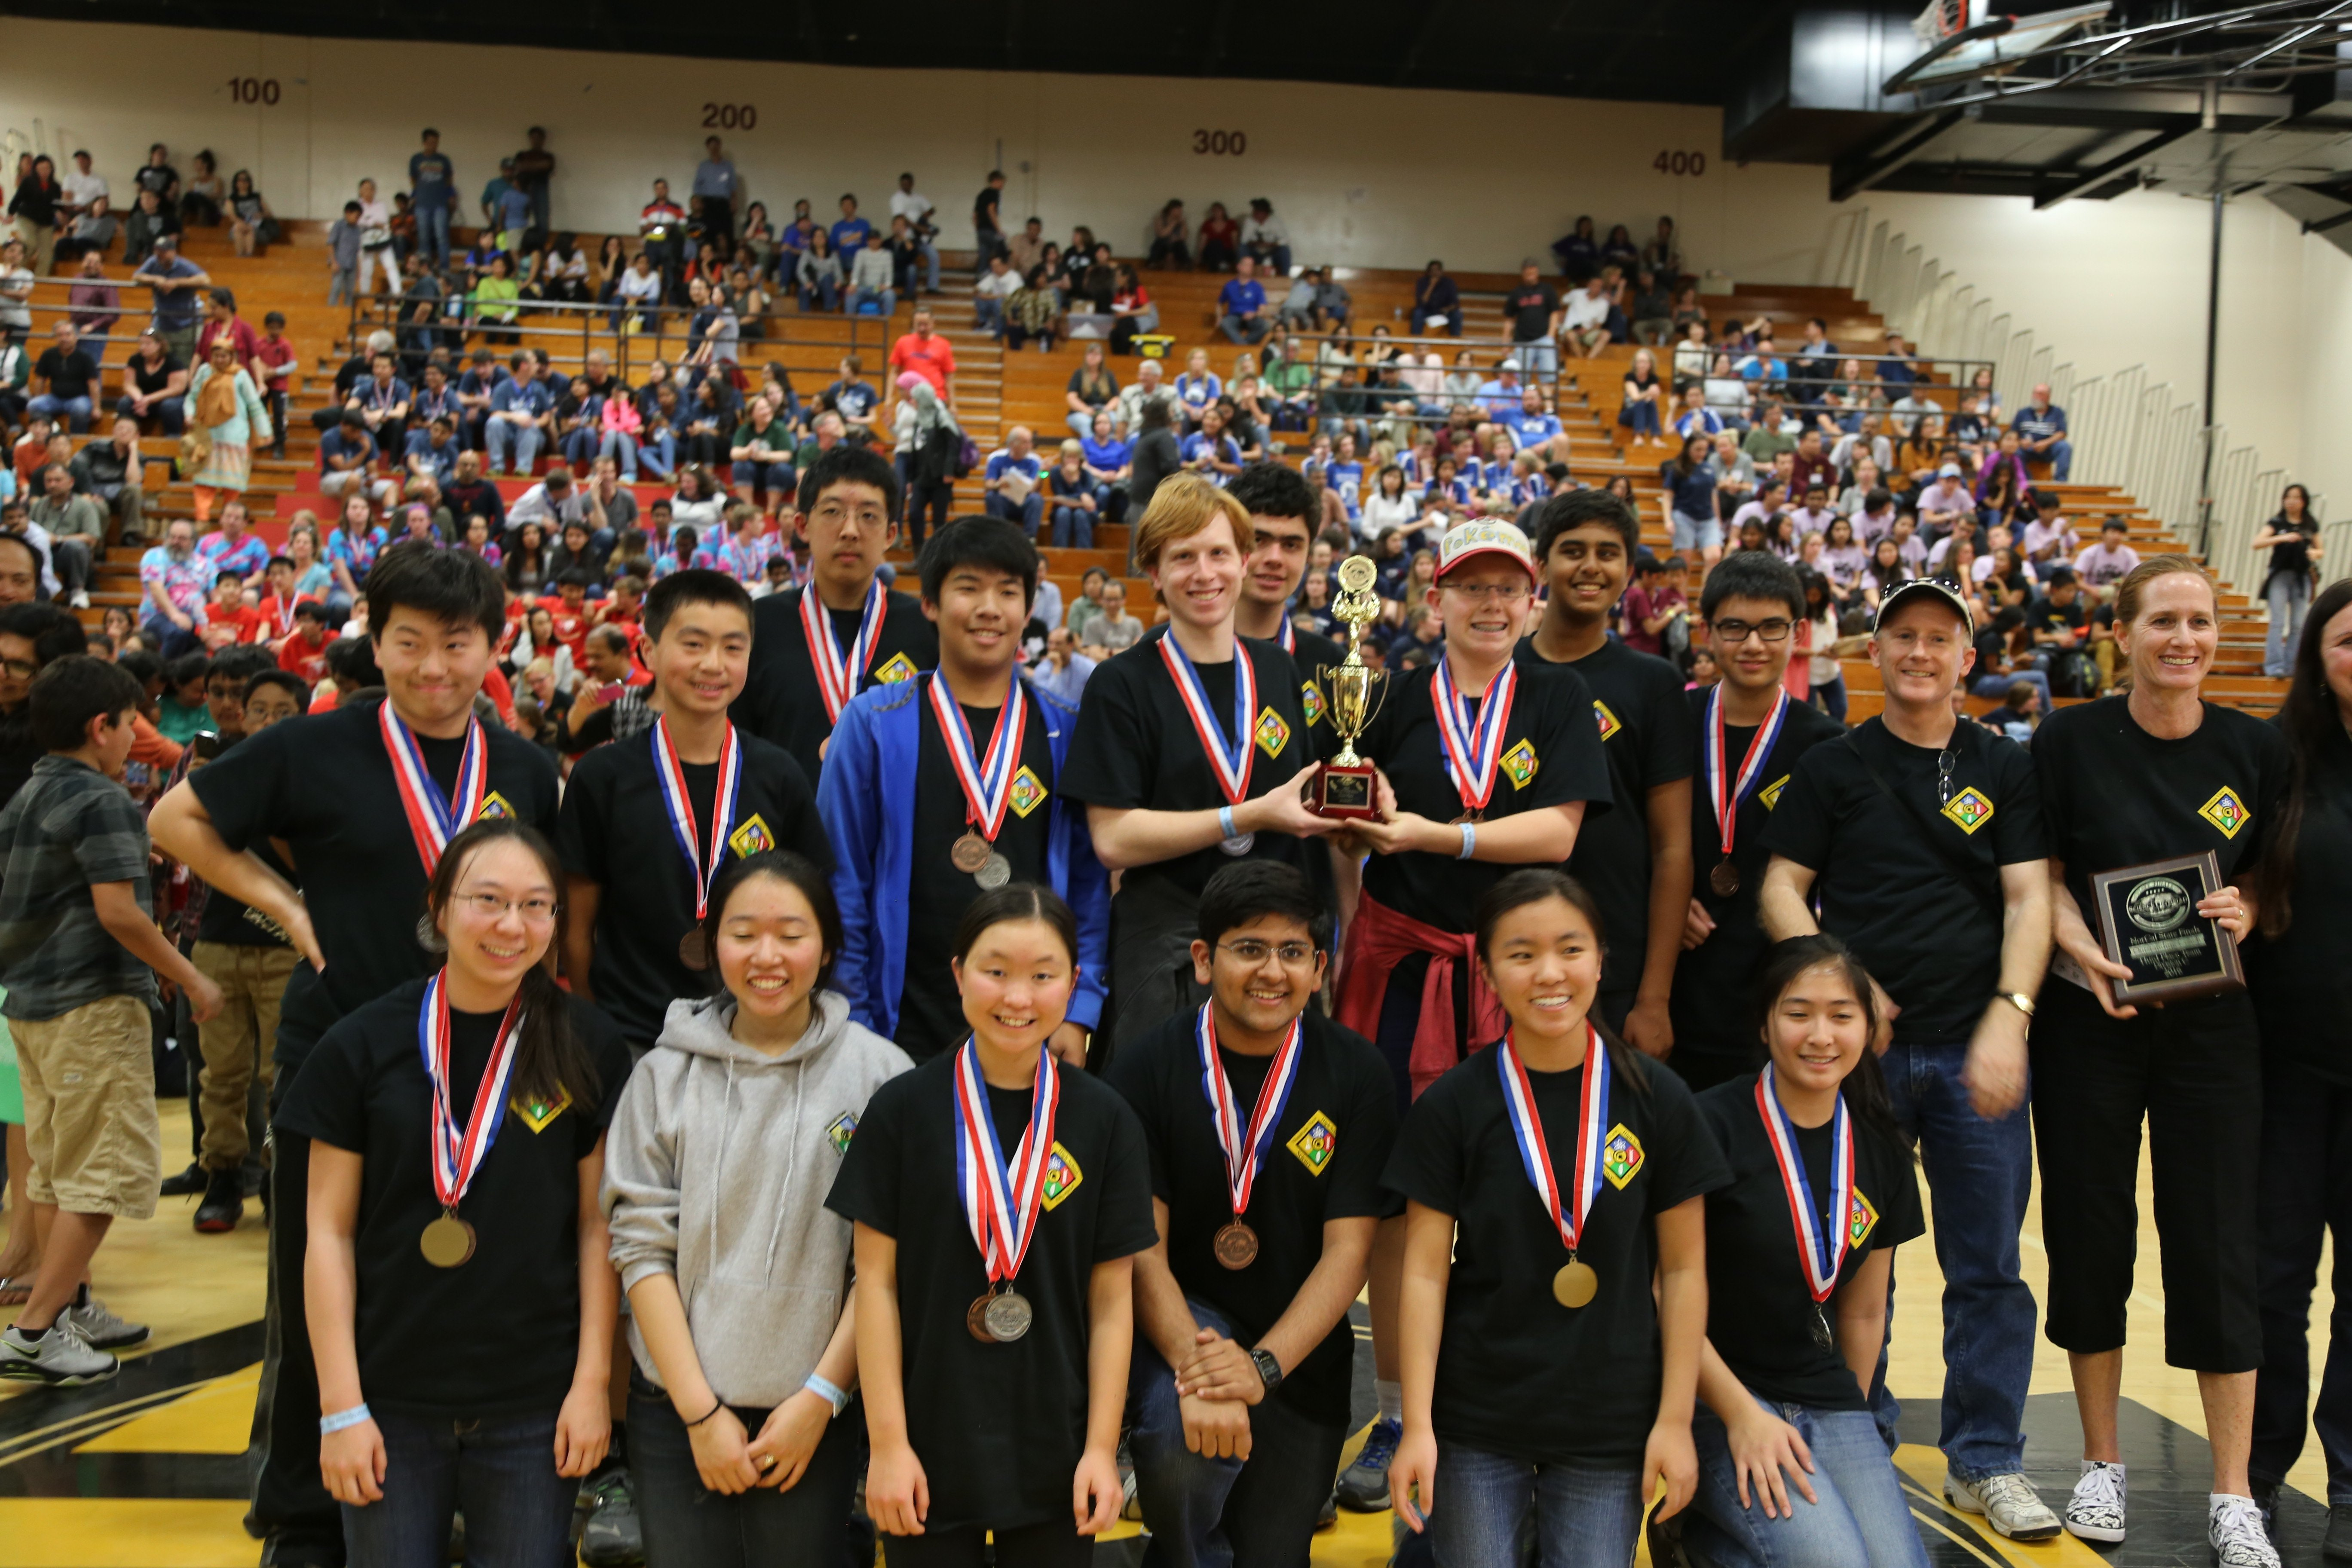 MVHS Science Olympiad team starts off 2017 in record fashion